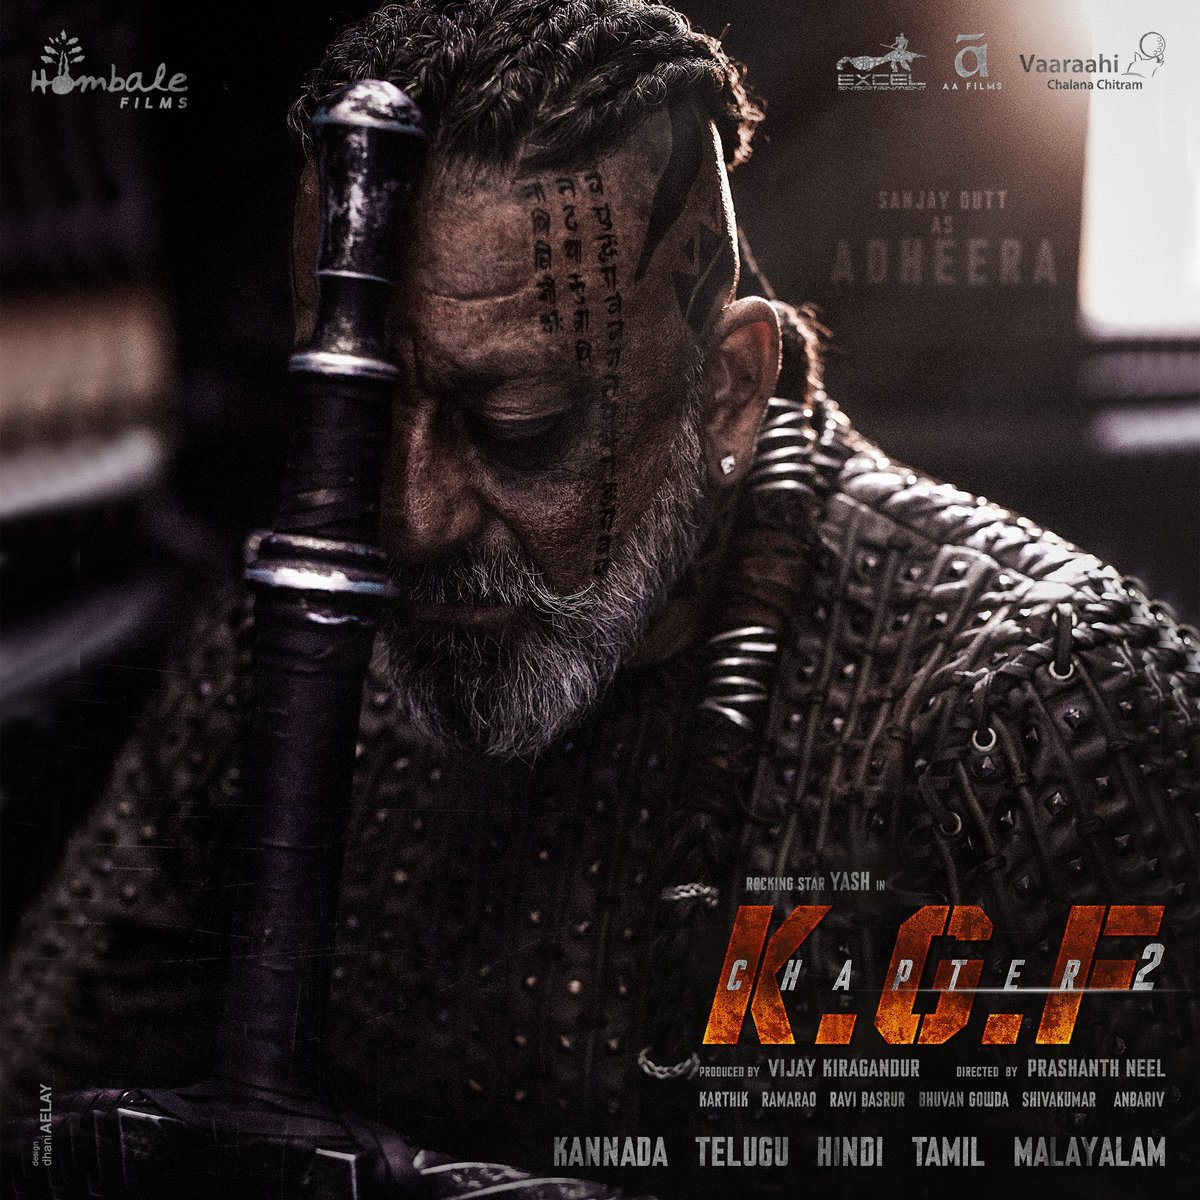 Many many happy returns of the day to my big bro @duttsanjay! Totally loved the first look of #Adheera! Lightning strikes⚡You're killing it as always! More power to you! Much love! #KGFChapter2 #HappyBirthdaySanjayDutt